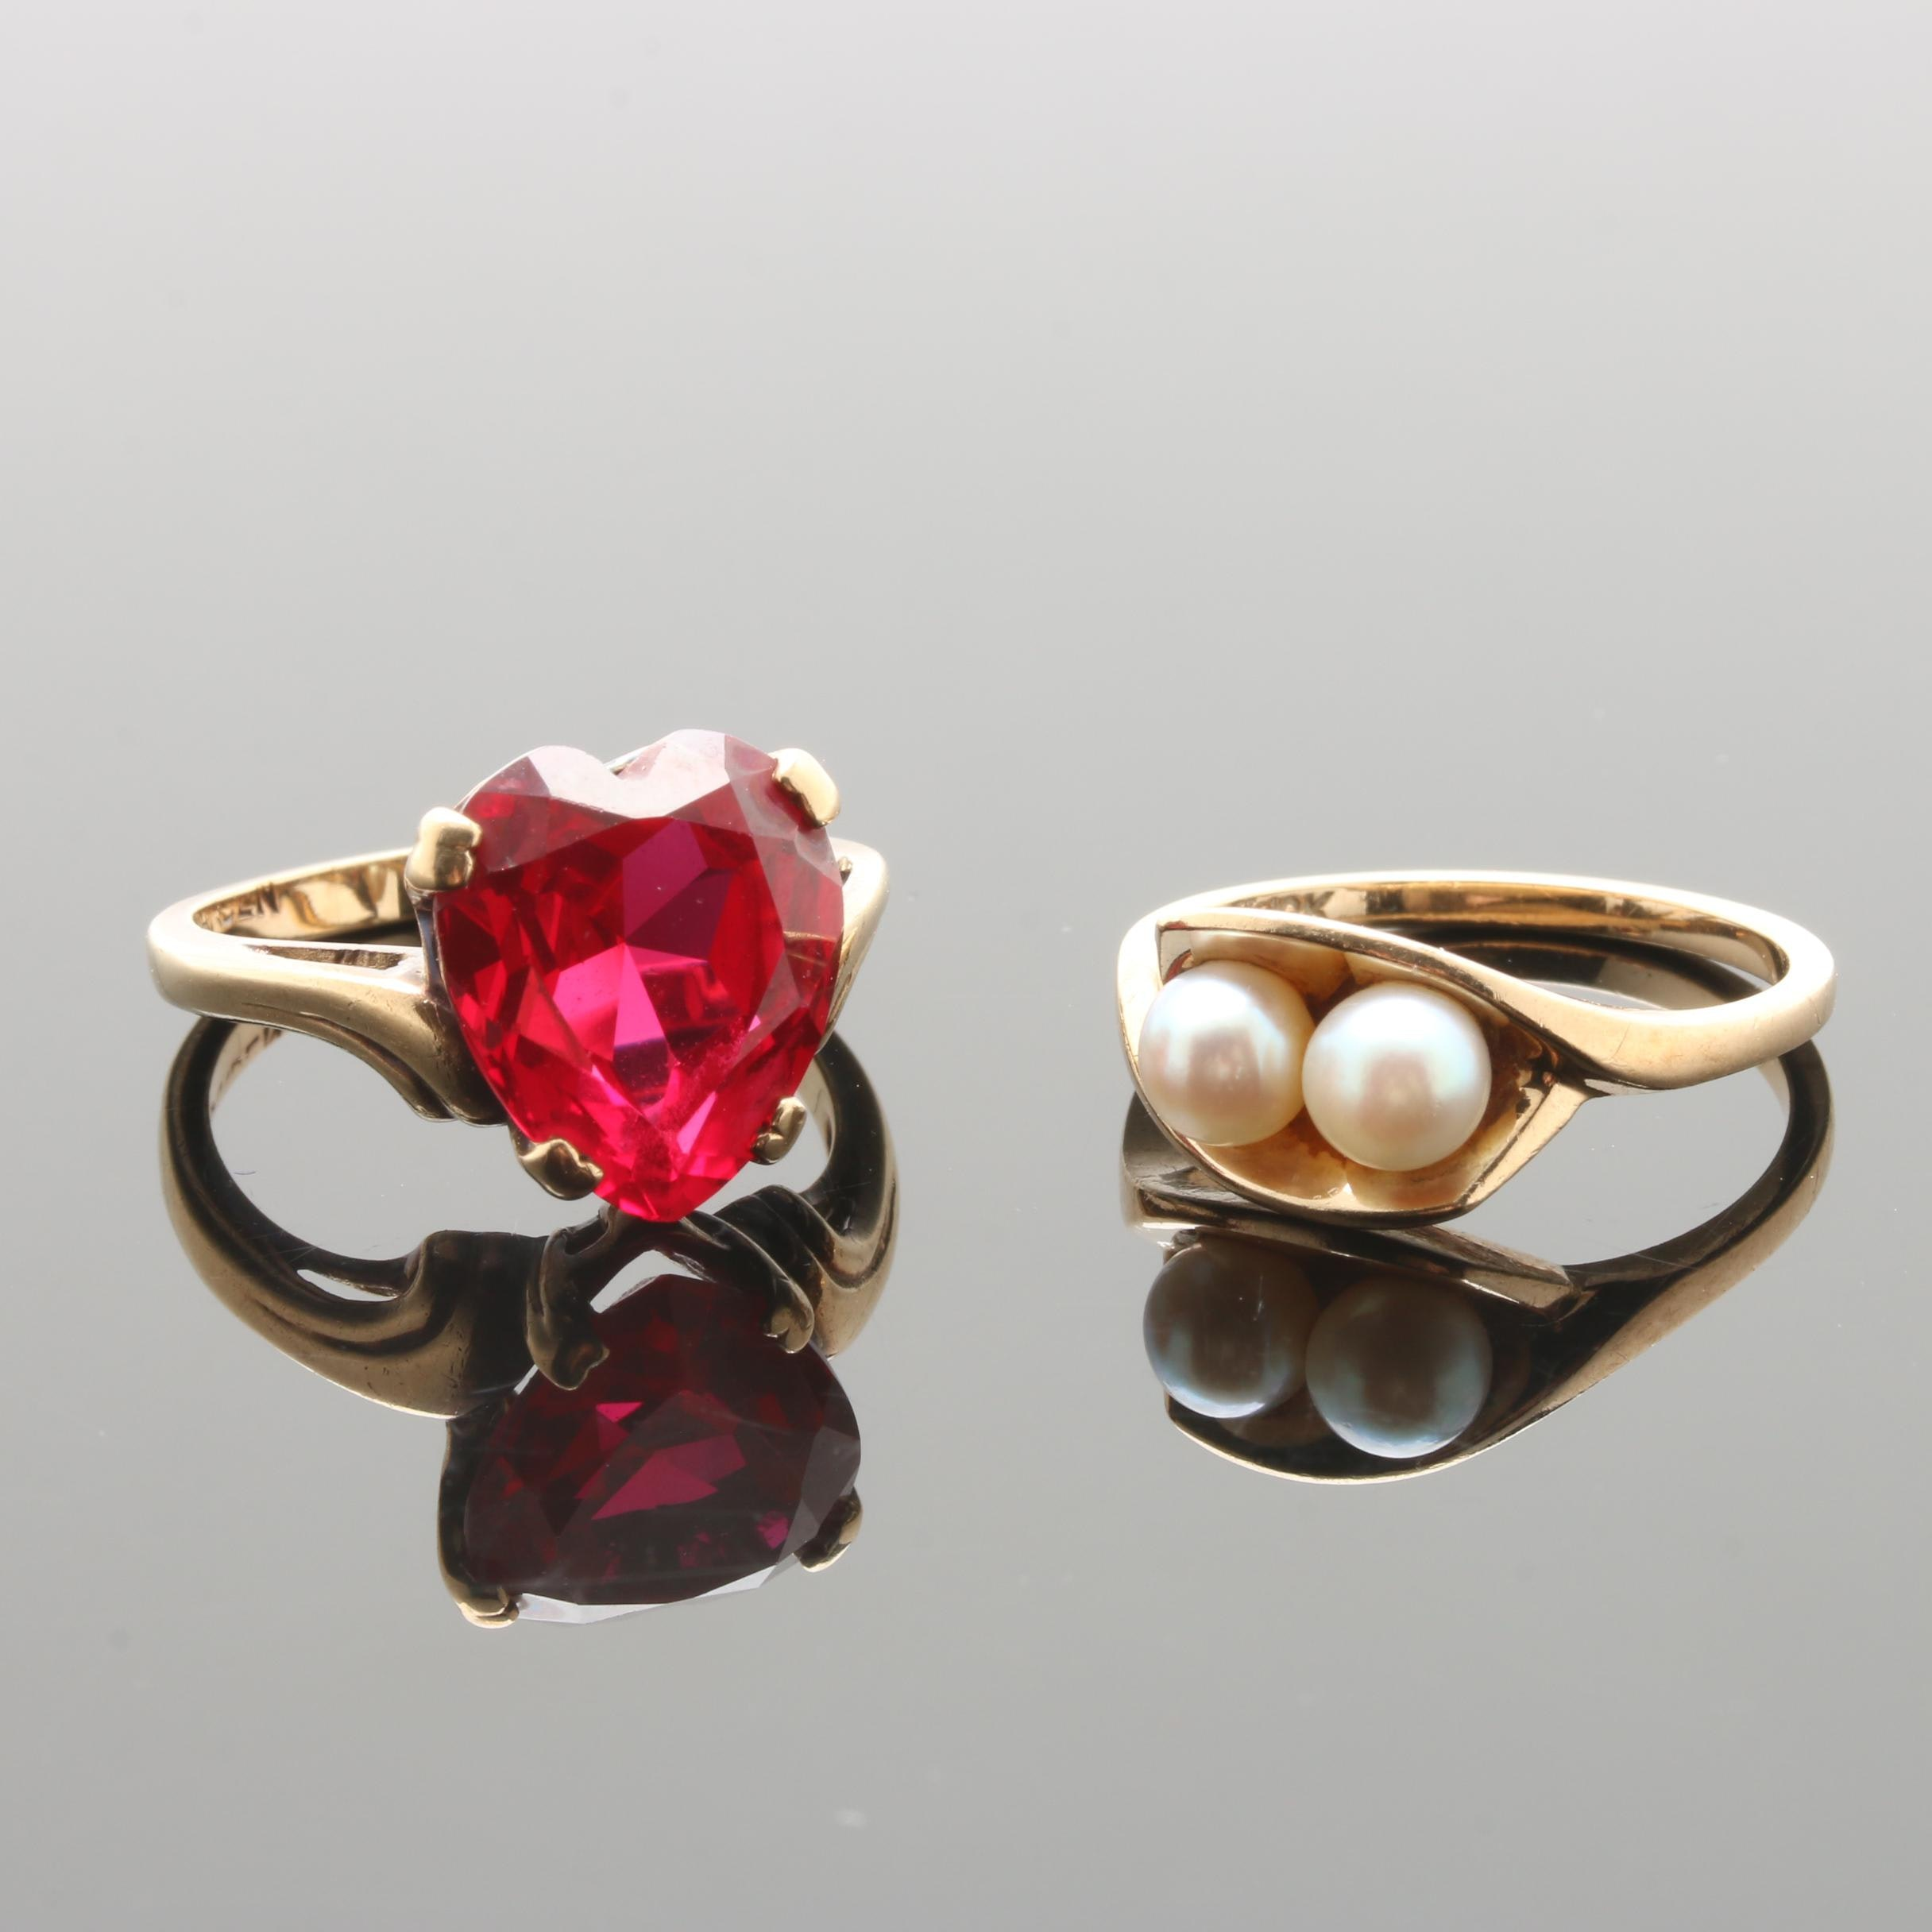 Vintage 10K Yellow Gold Cultured Pearl and Synthetic Ruby Rings